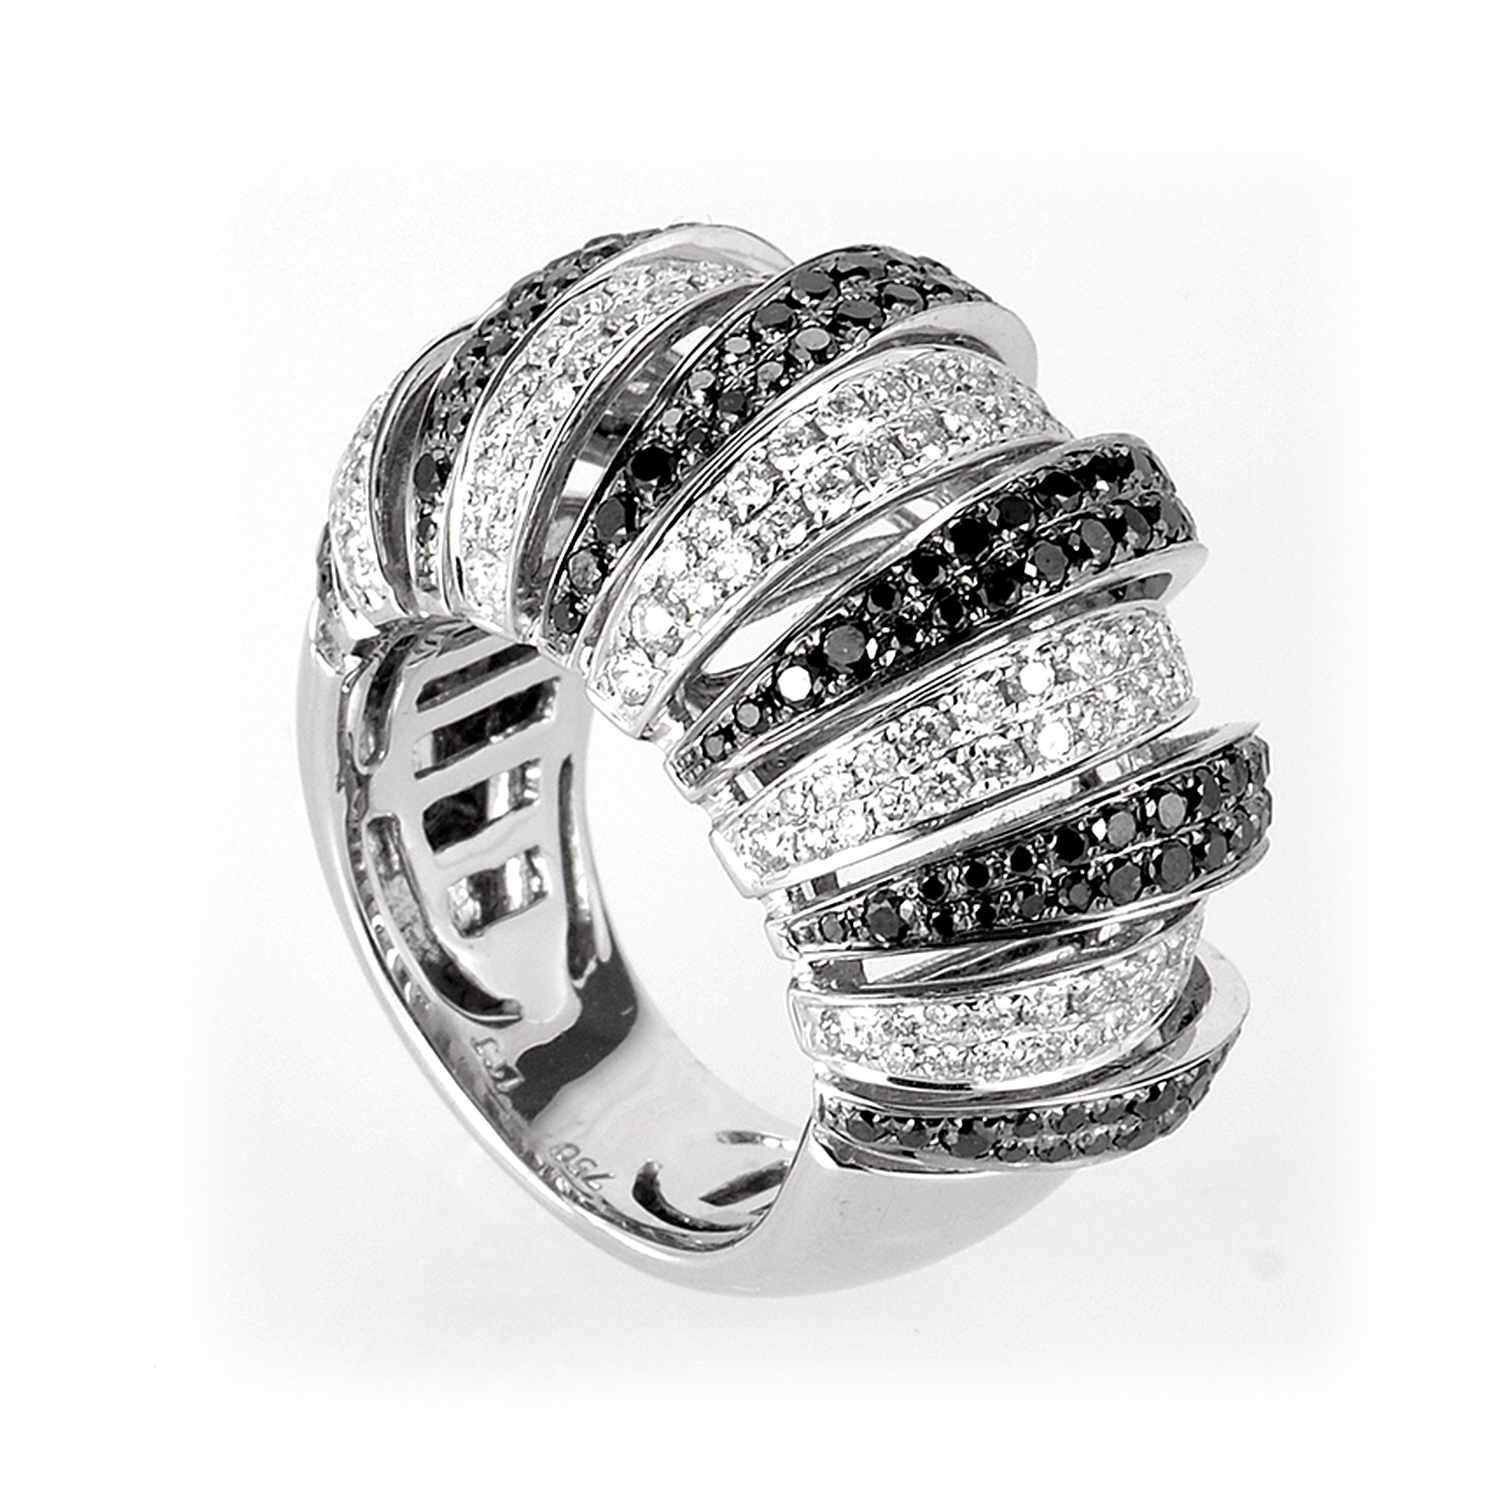 18K White Gold White and Black Diamonds Ring CRR7879